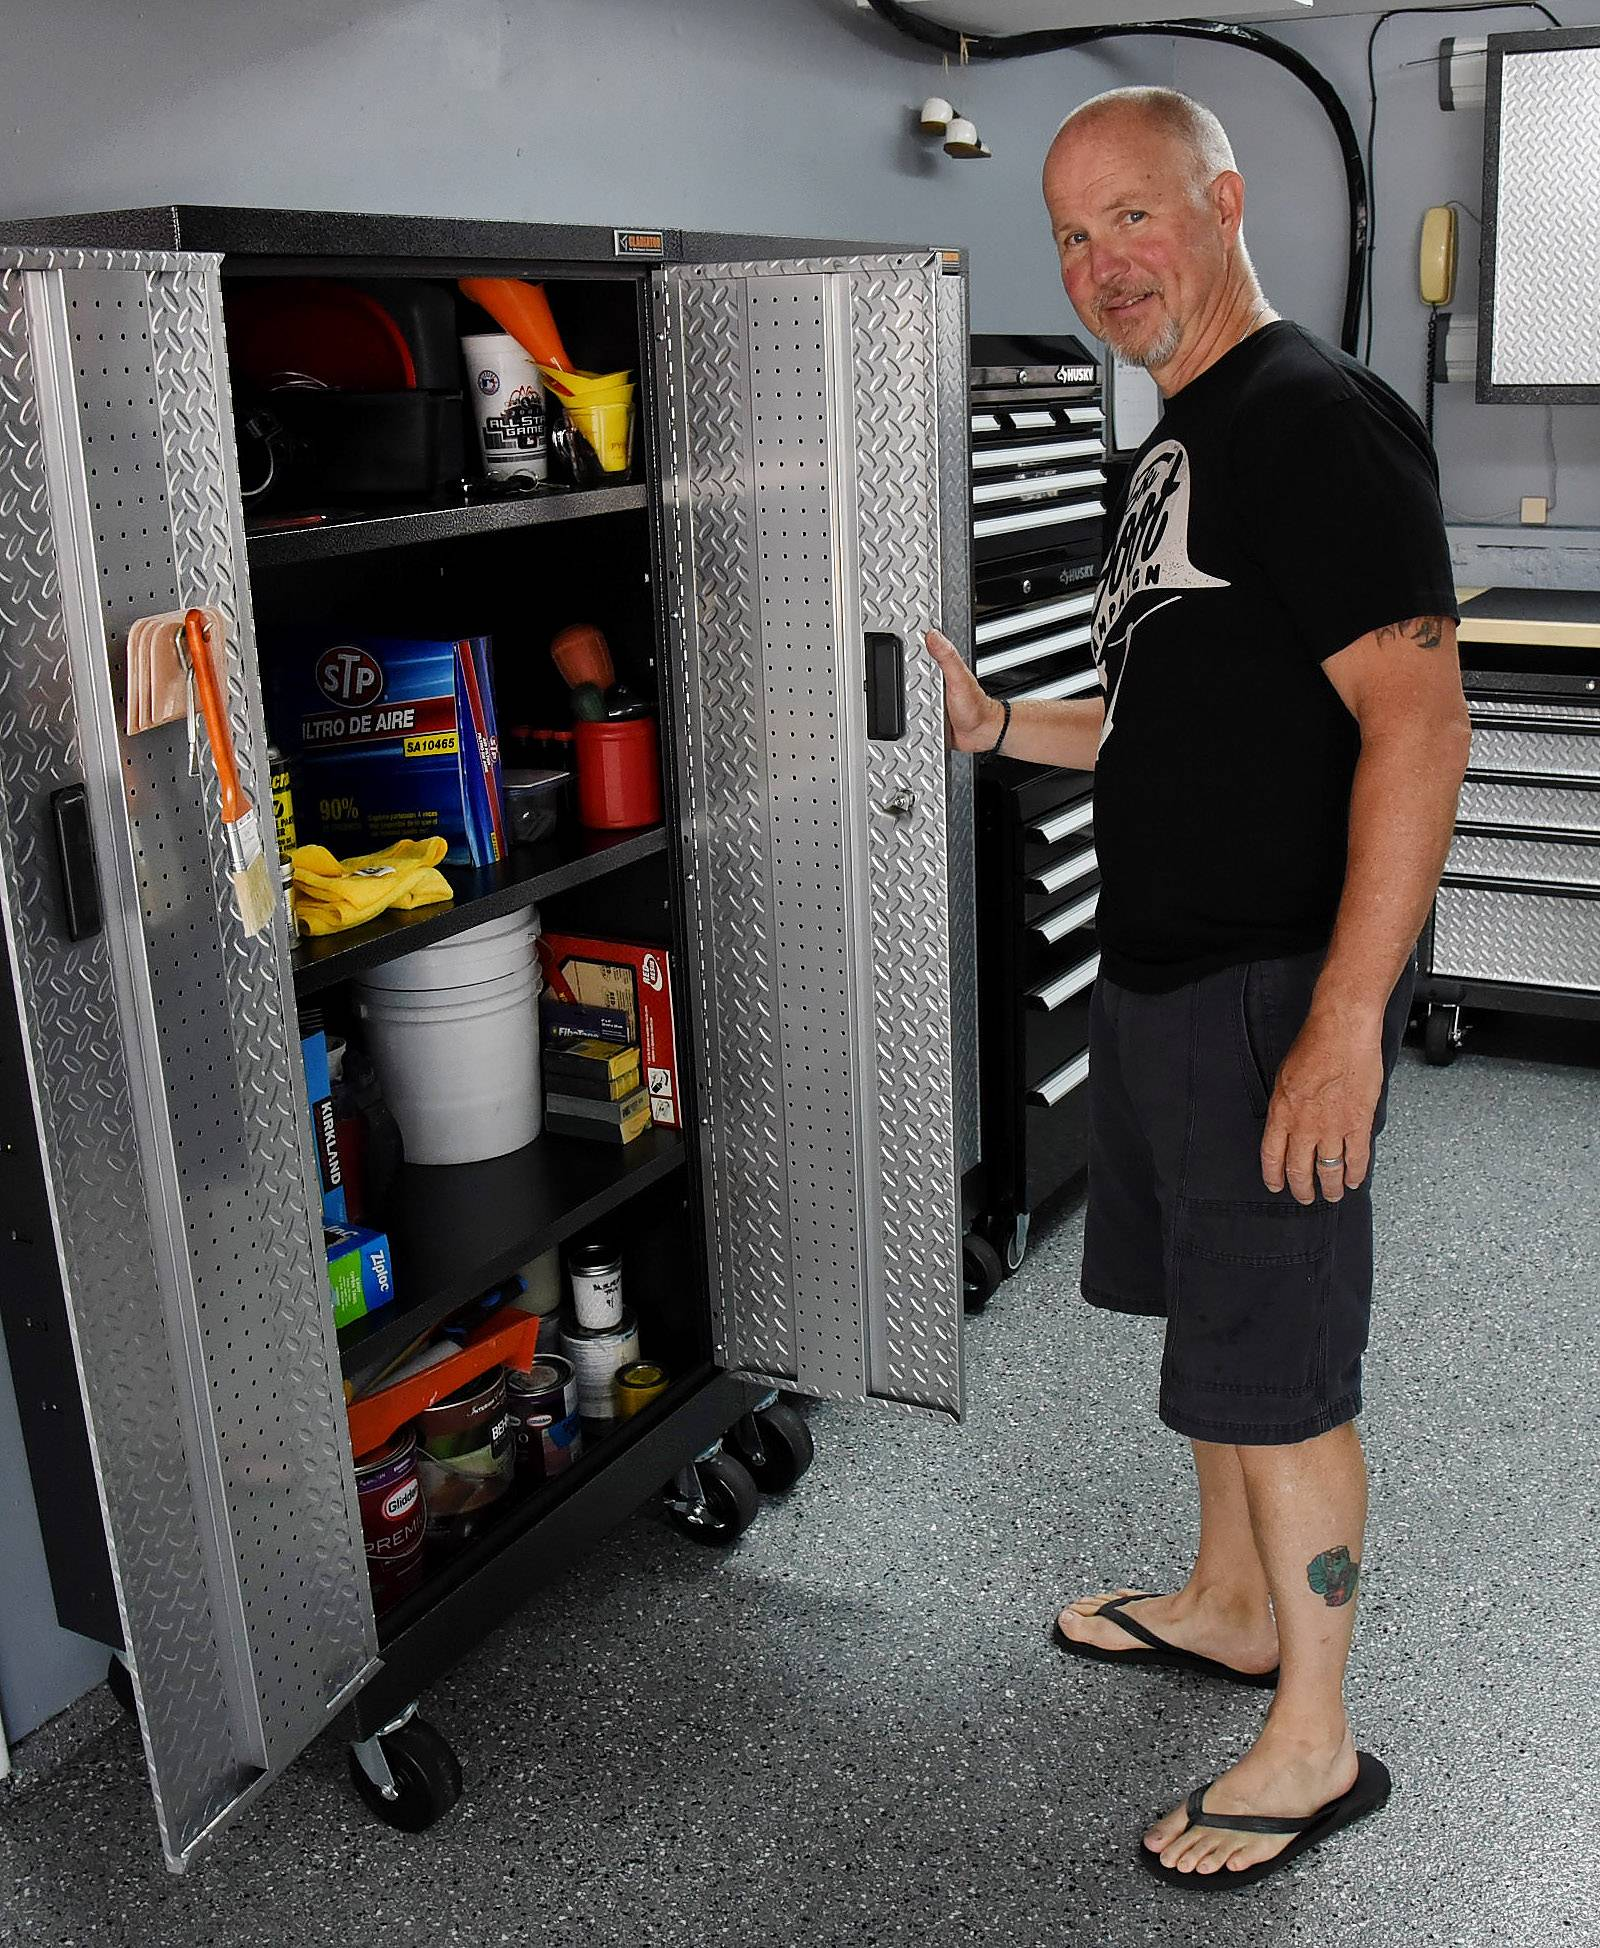 Rob Ruisz shows off a new cabinet in the garage where he entertains and works on vehicles.